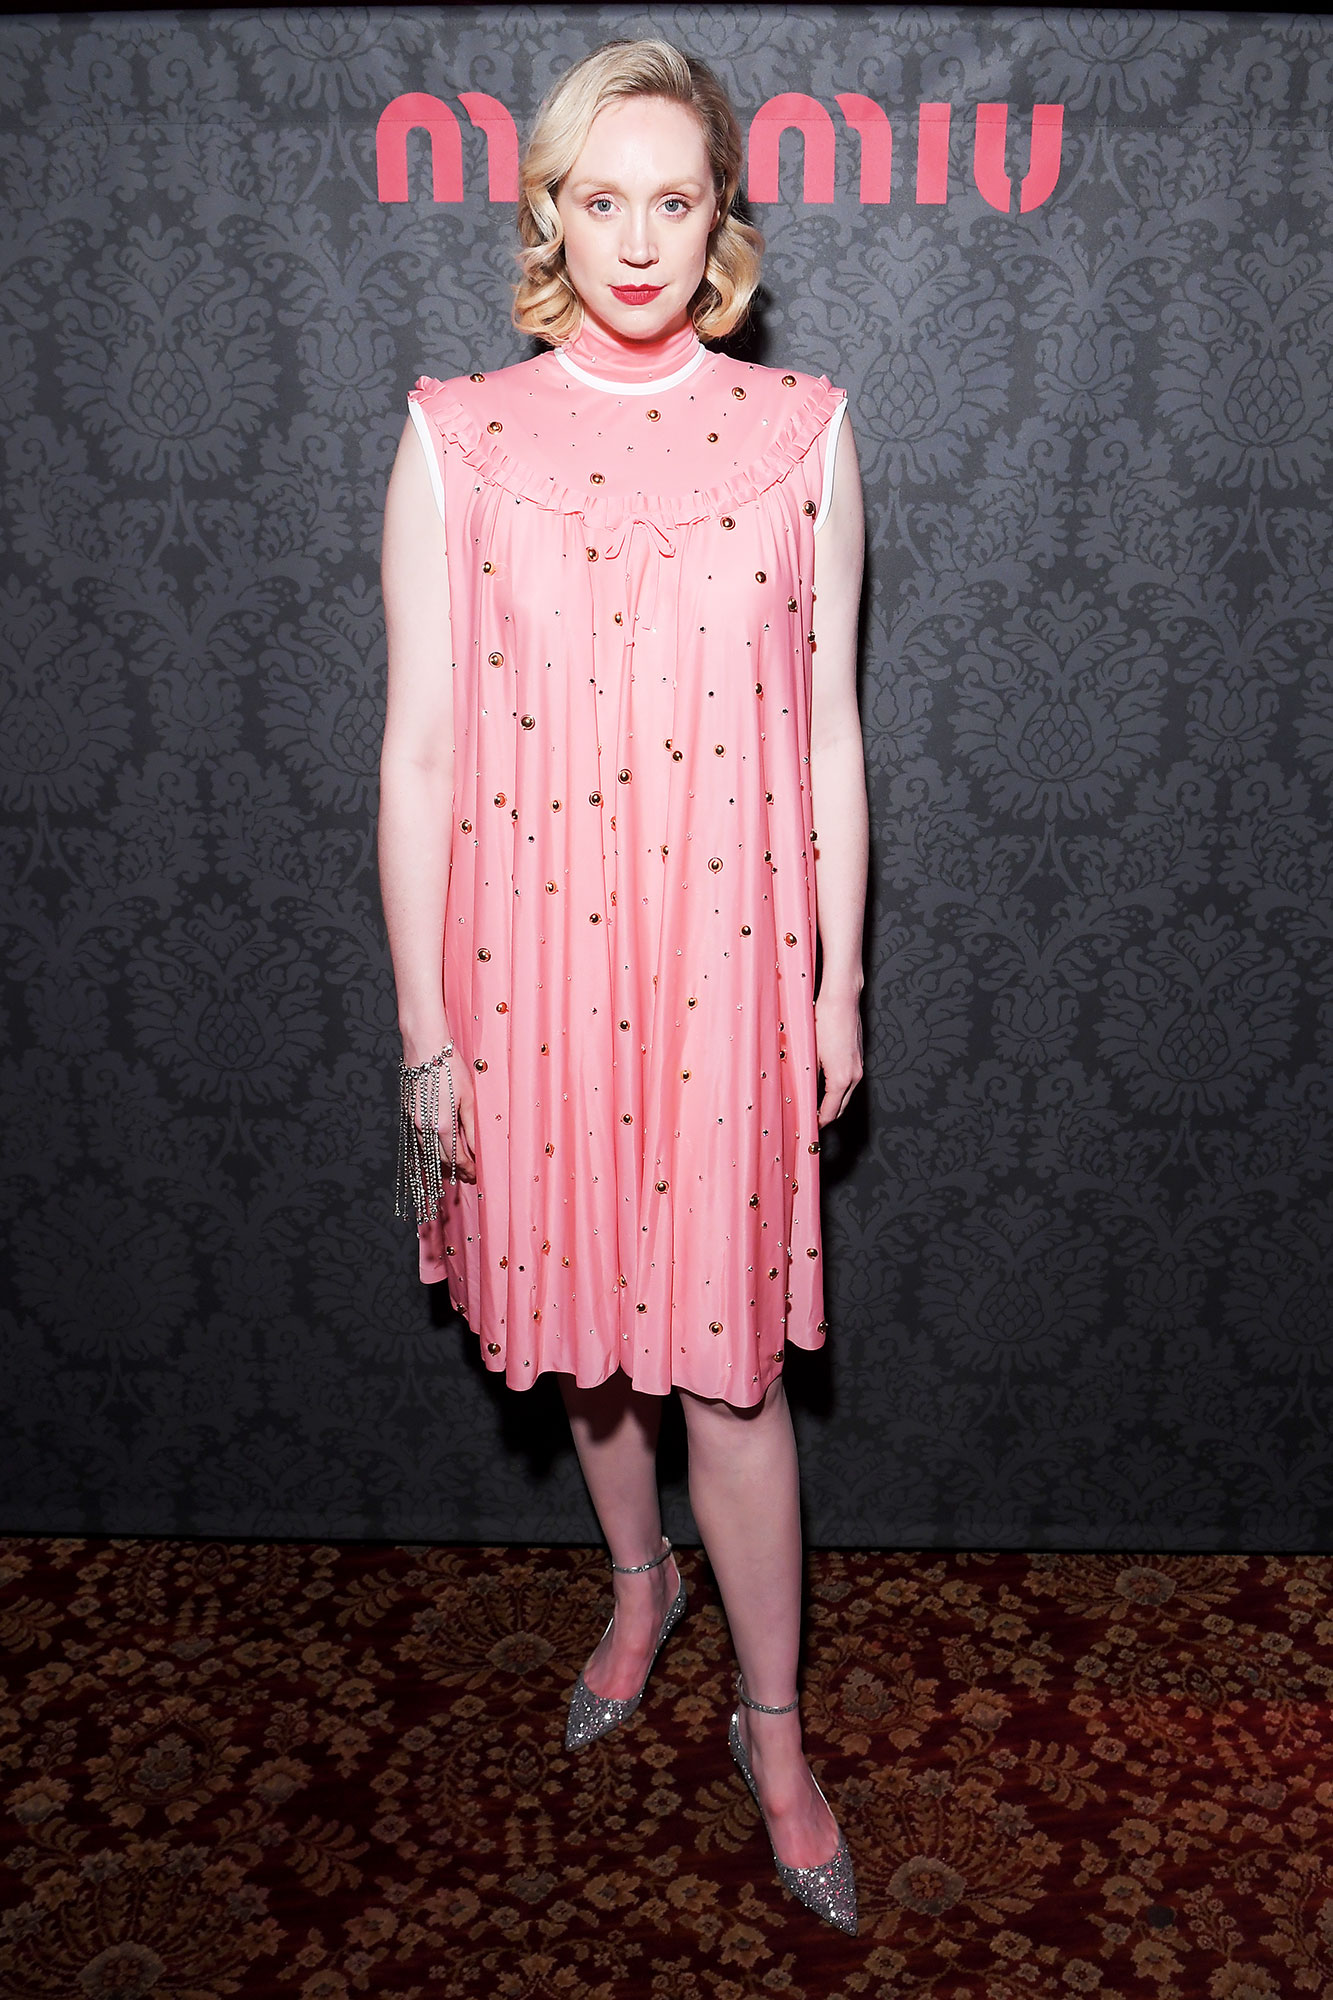 Gwendoline Christie Stars Closed Out Paris Fashion Week on a Sartorial High Note - The Game of Thrones star was thinking pink in an embellished mini at the Miu Miu party on Tuesday, March 5.